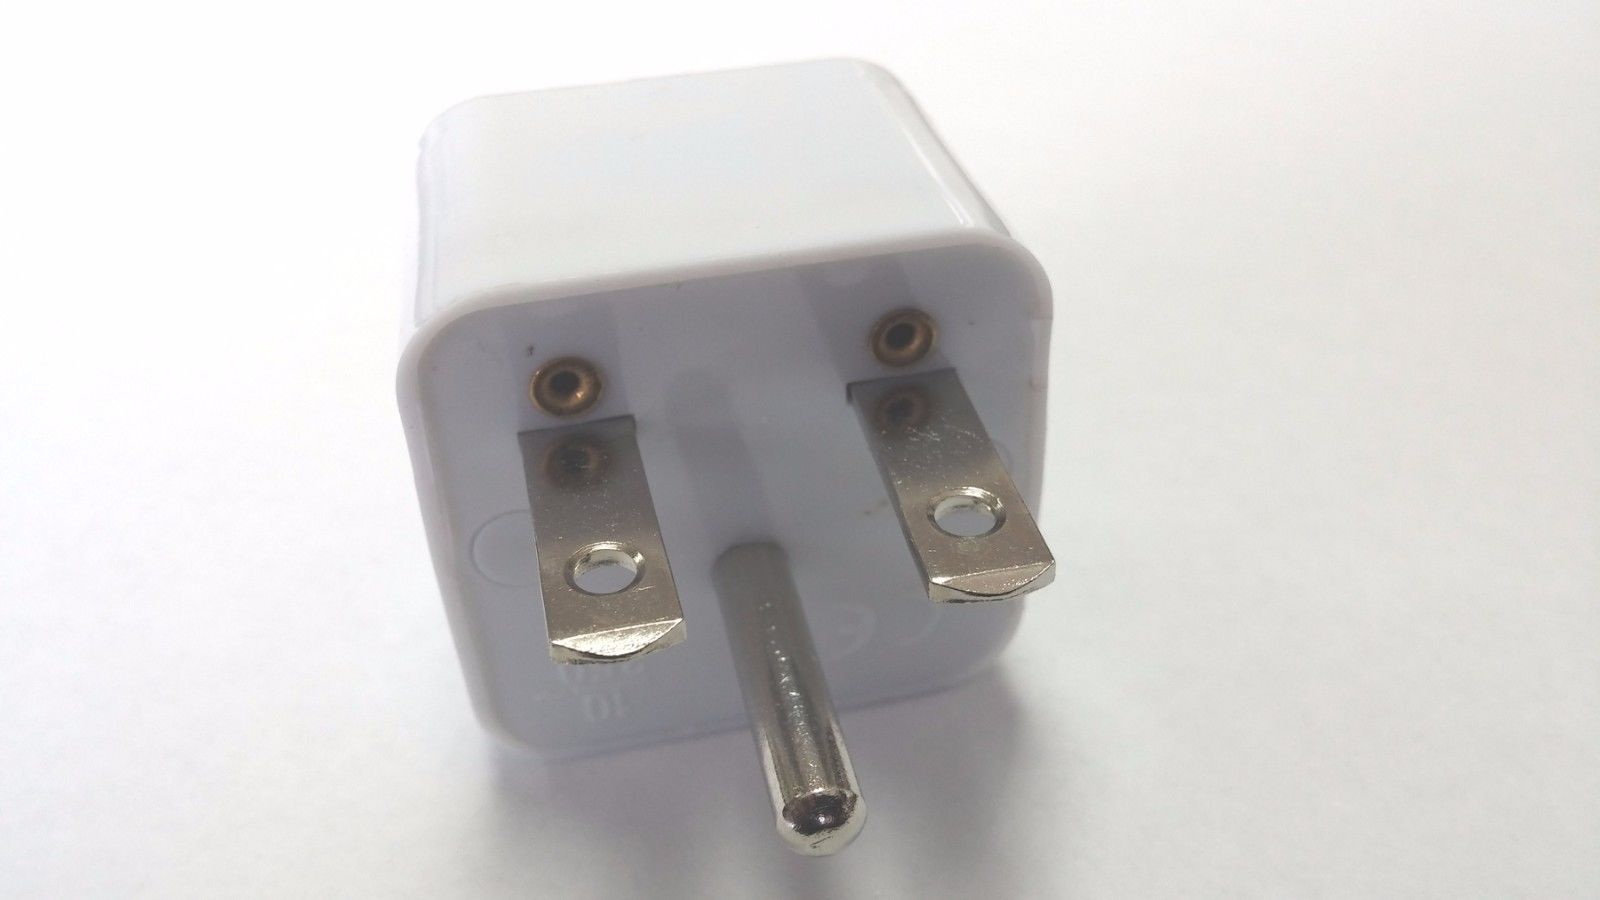 Seven Star - SS433 W Nema 6-15 Plug To International Adapter for USA ...